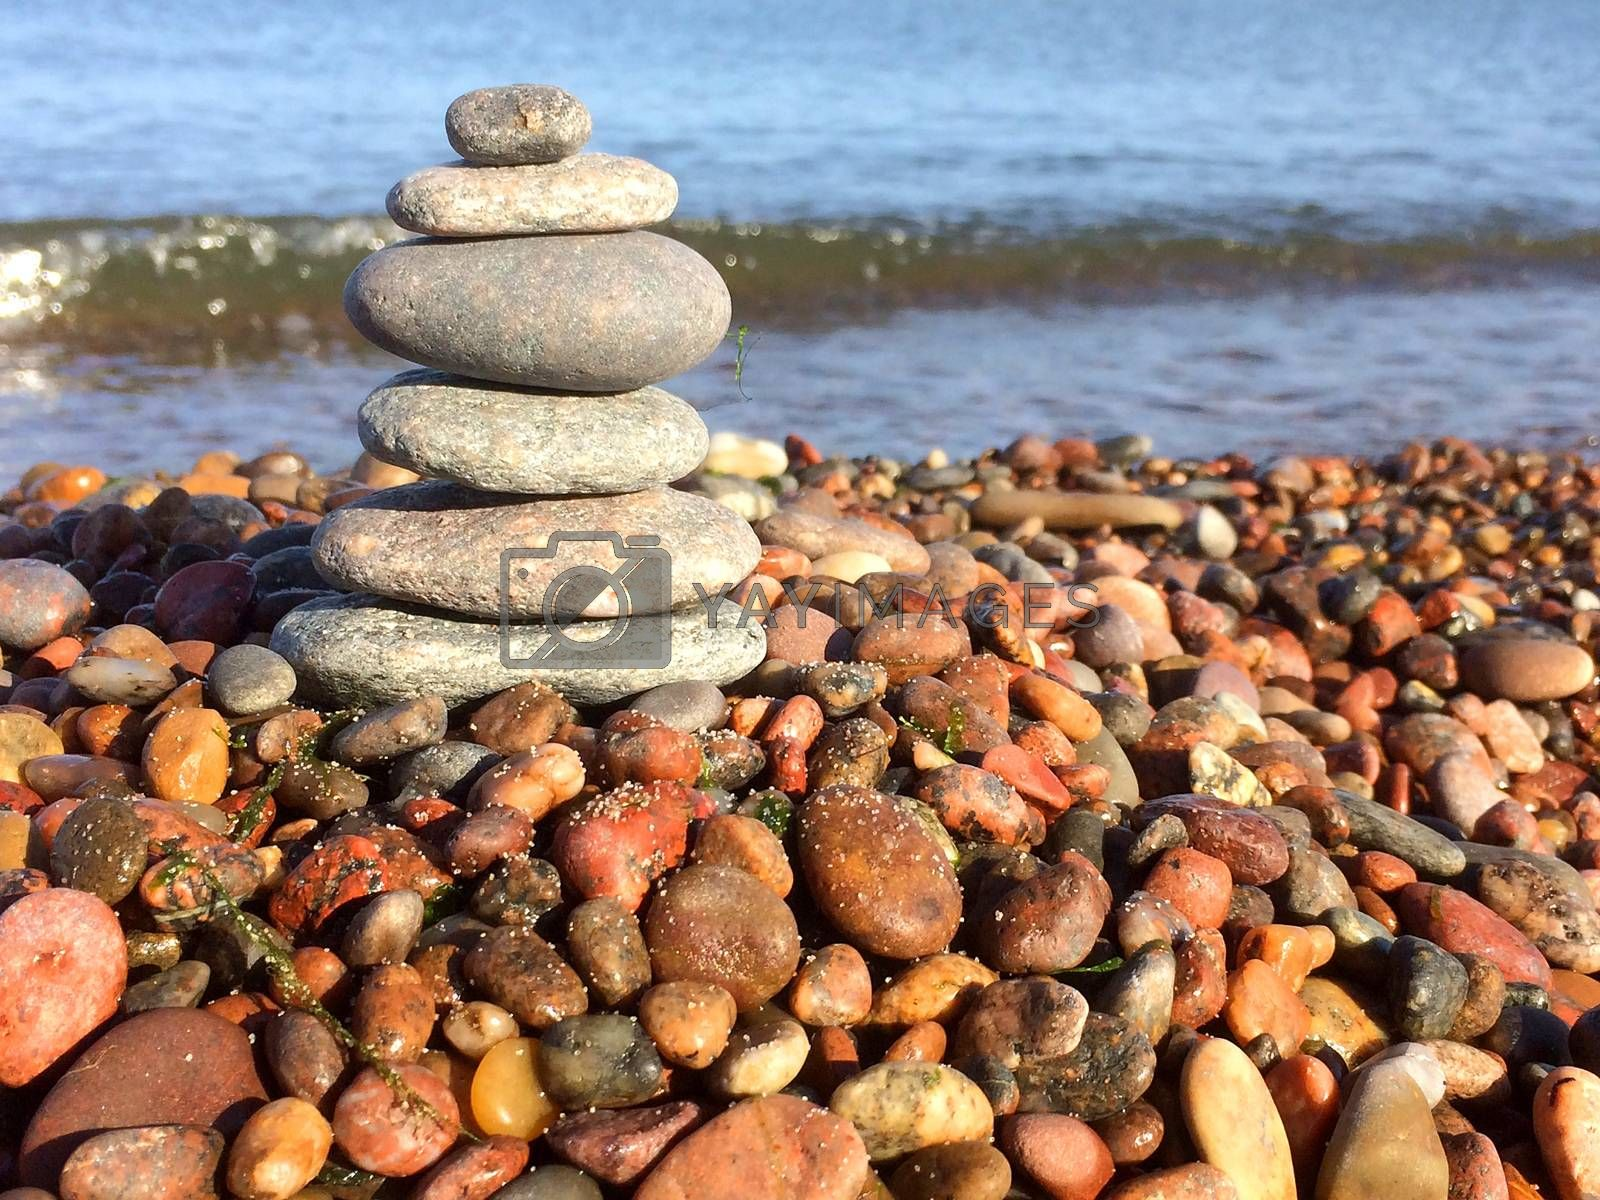 Zen stones on the beach by bremse